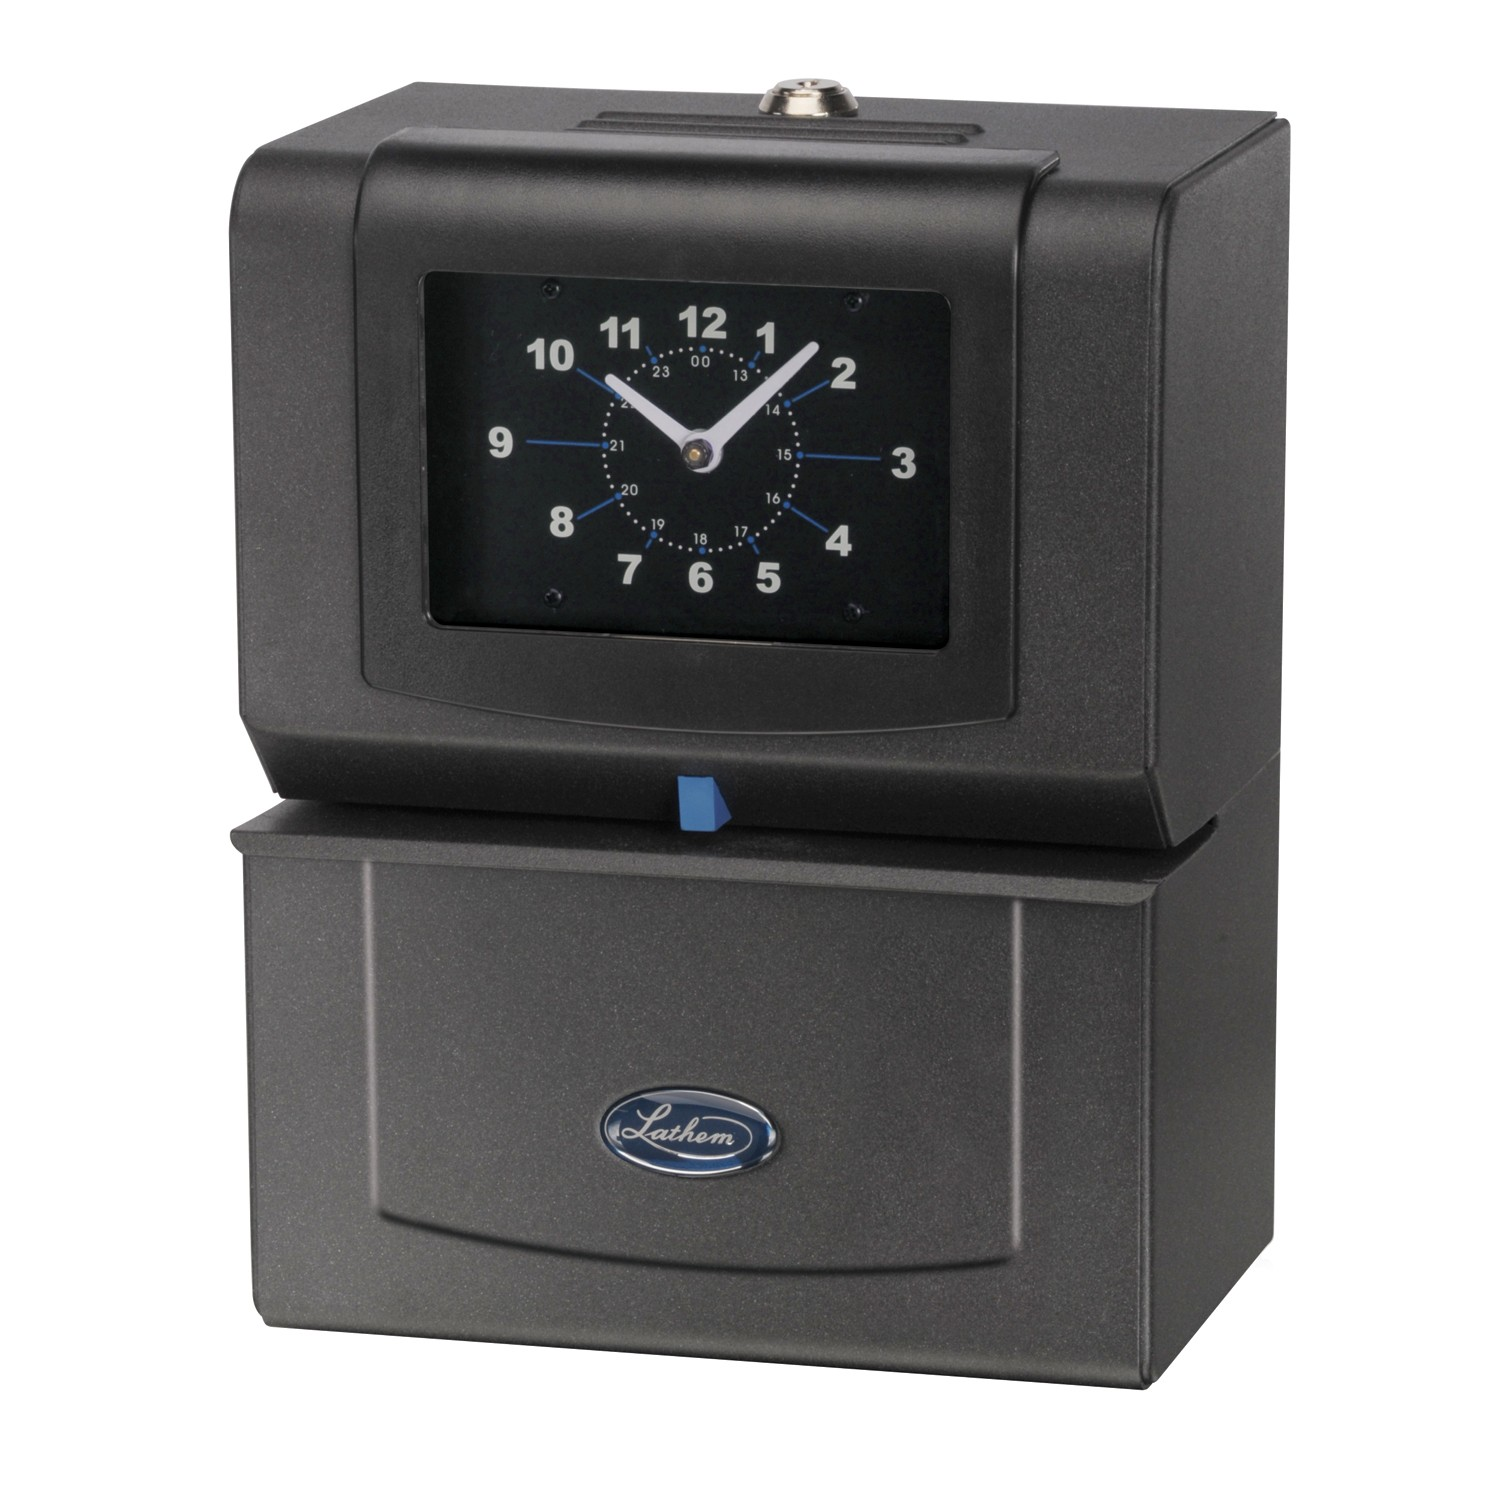 Lathem 4001 Heavy Duty Time Recorder (Prints month, date, 1-12 hours and minutes)